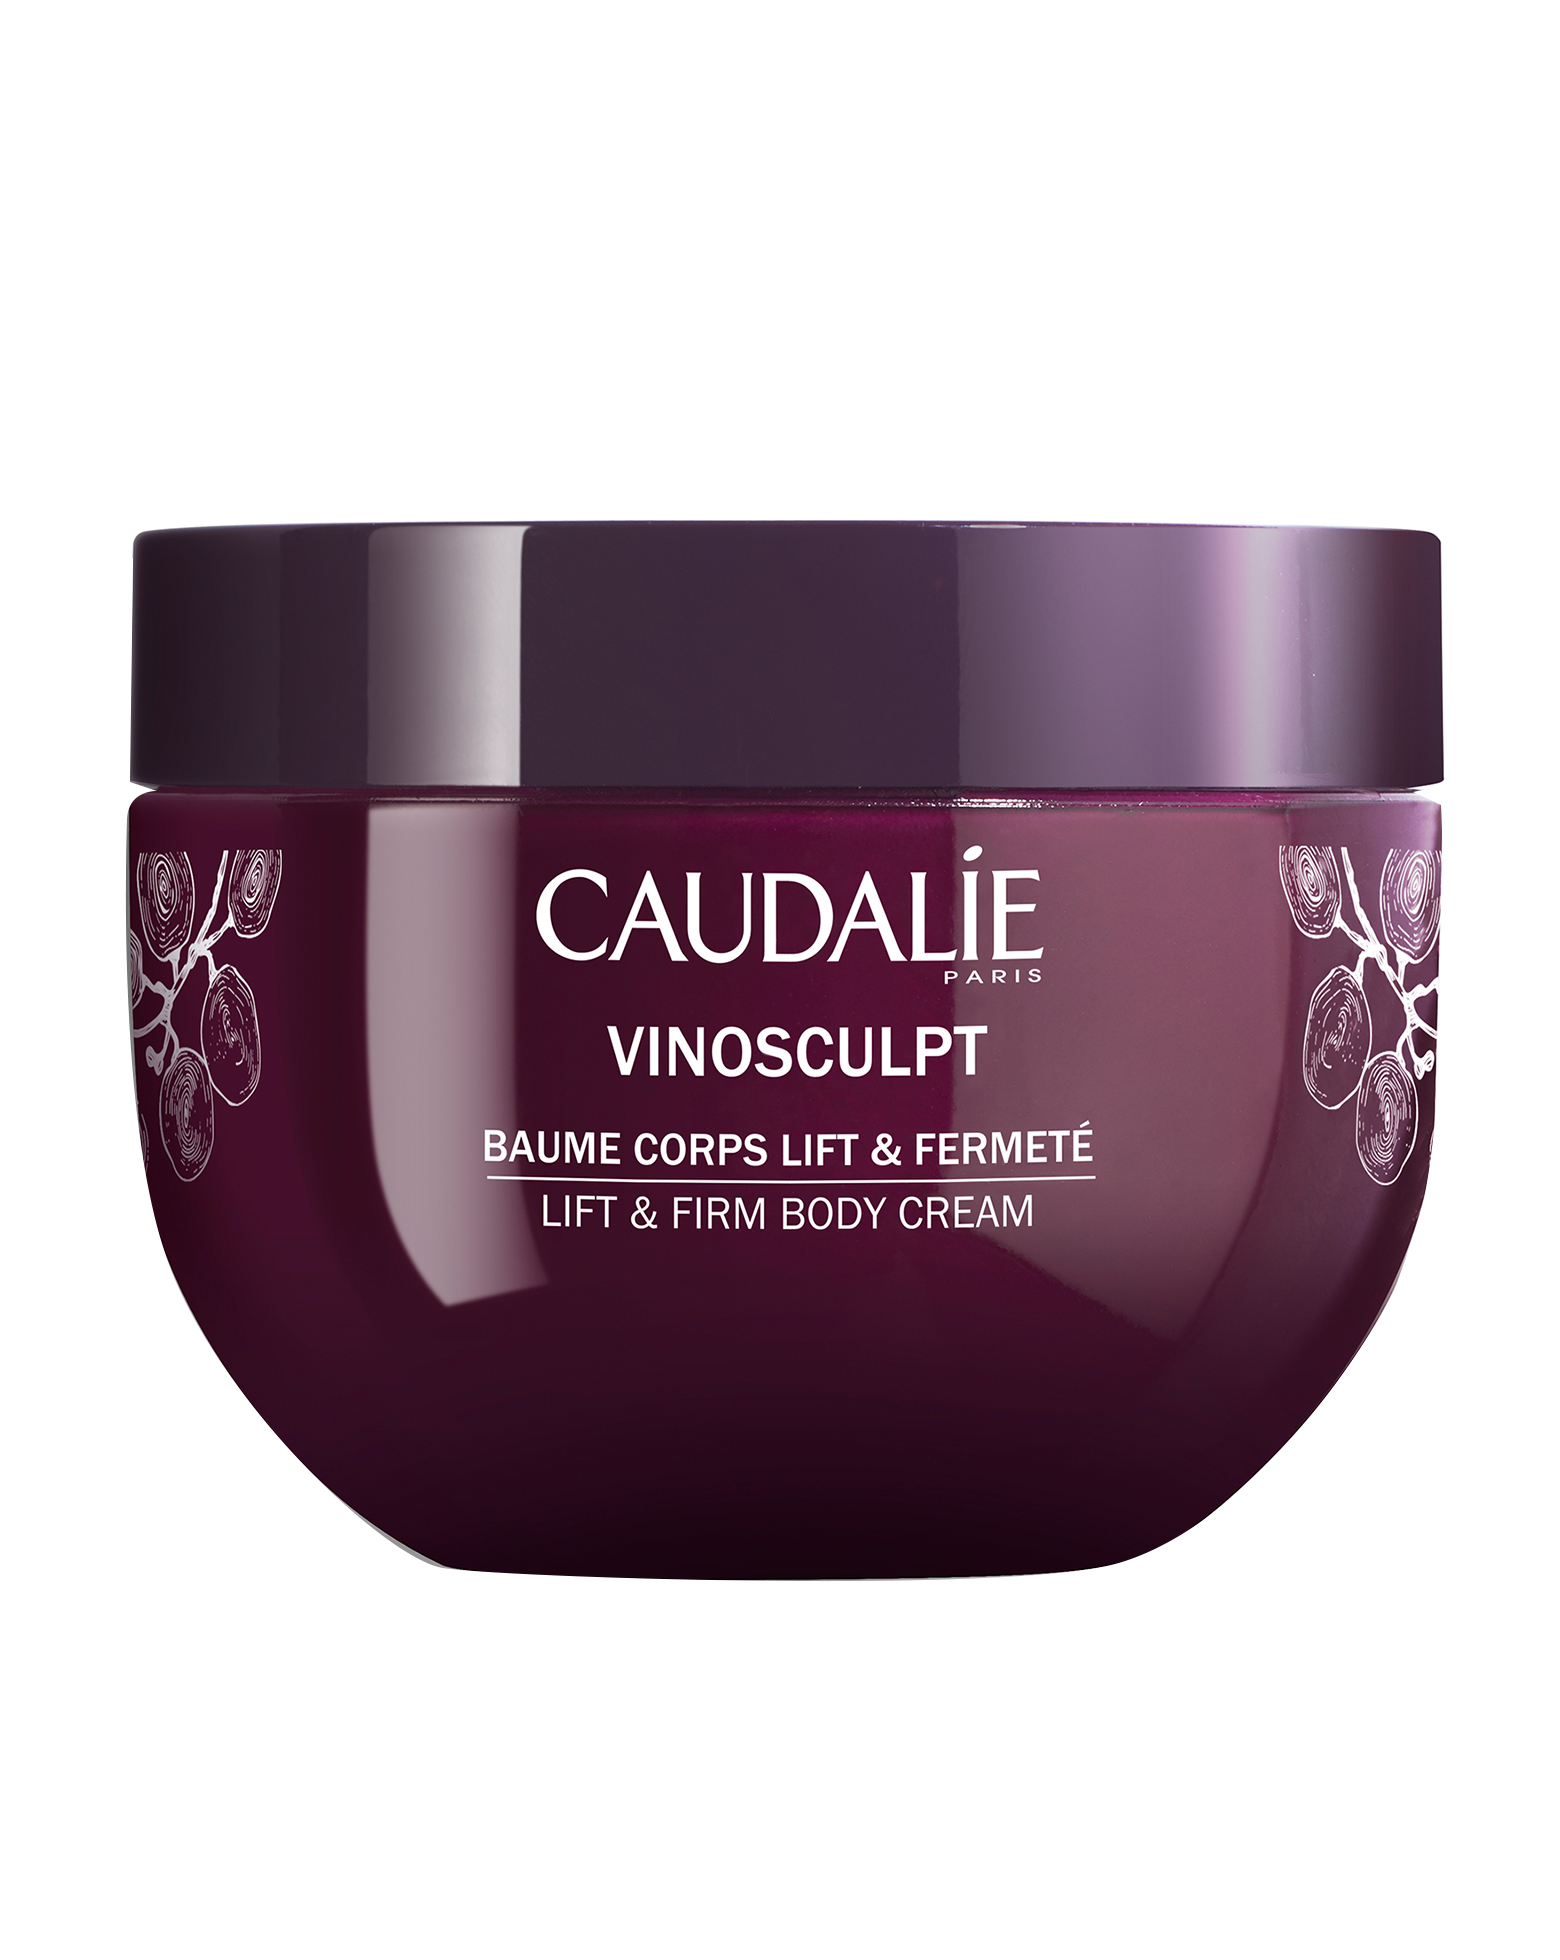 Caudalie - Vinosculpt Lift & Firm Body Cream 250 ml